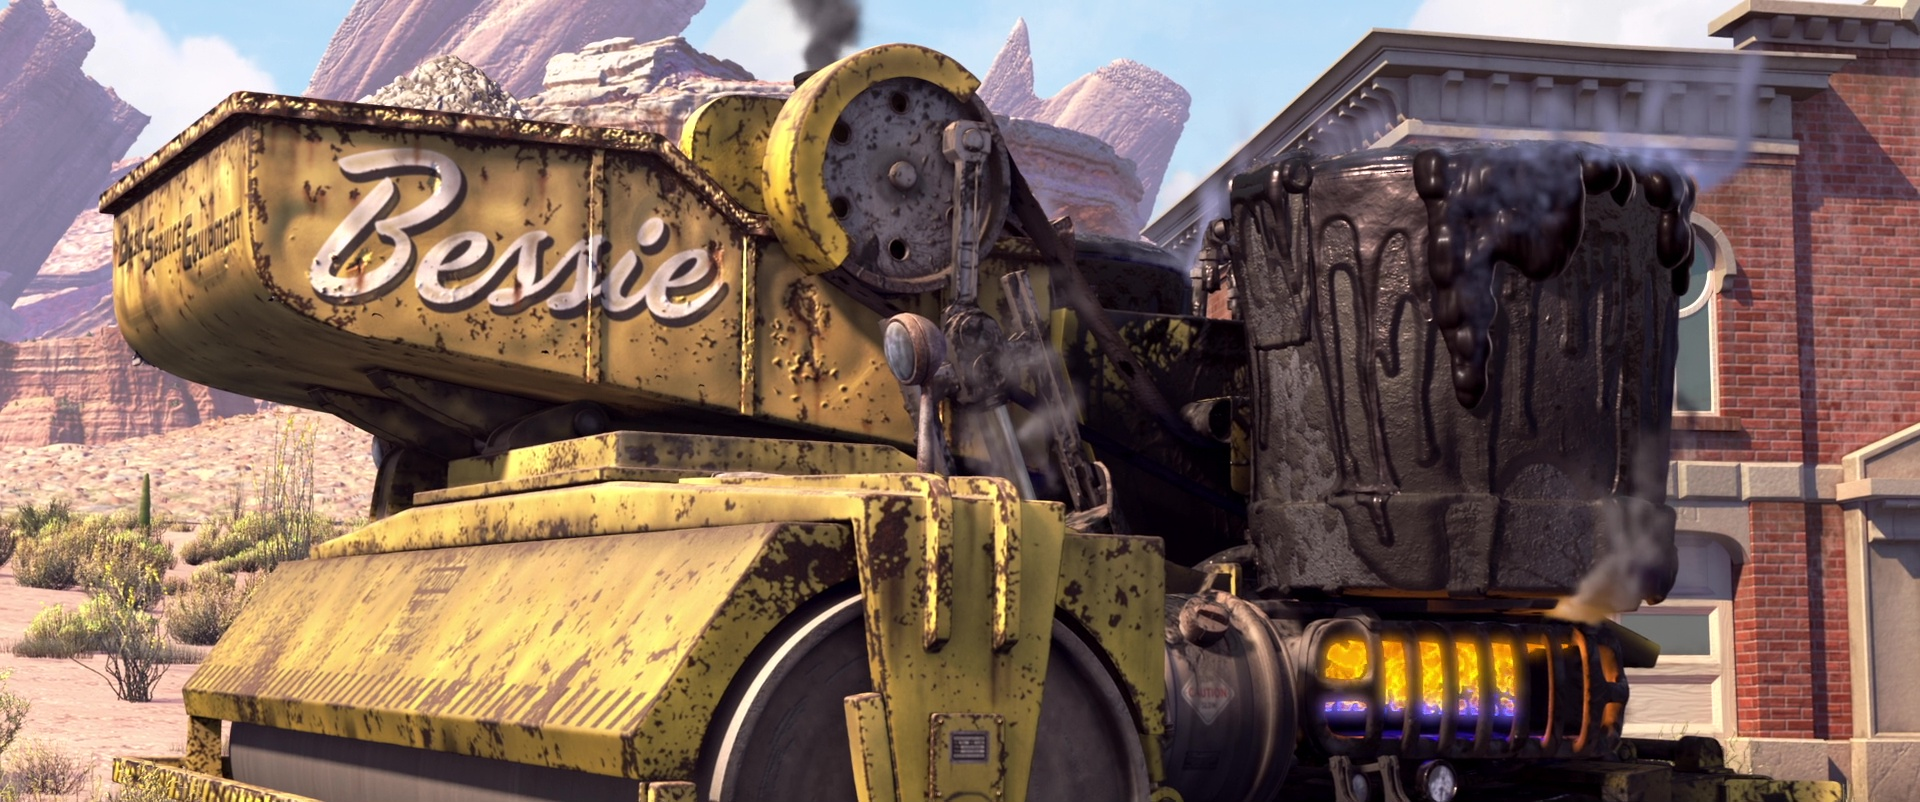 New Games Car >> Bessie | Pixar Wiki | FANDOM powered by Wikia